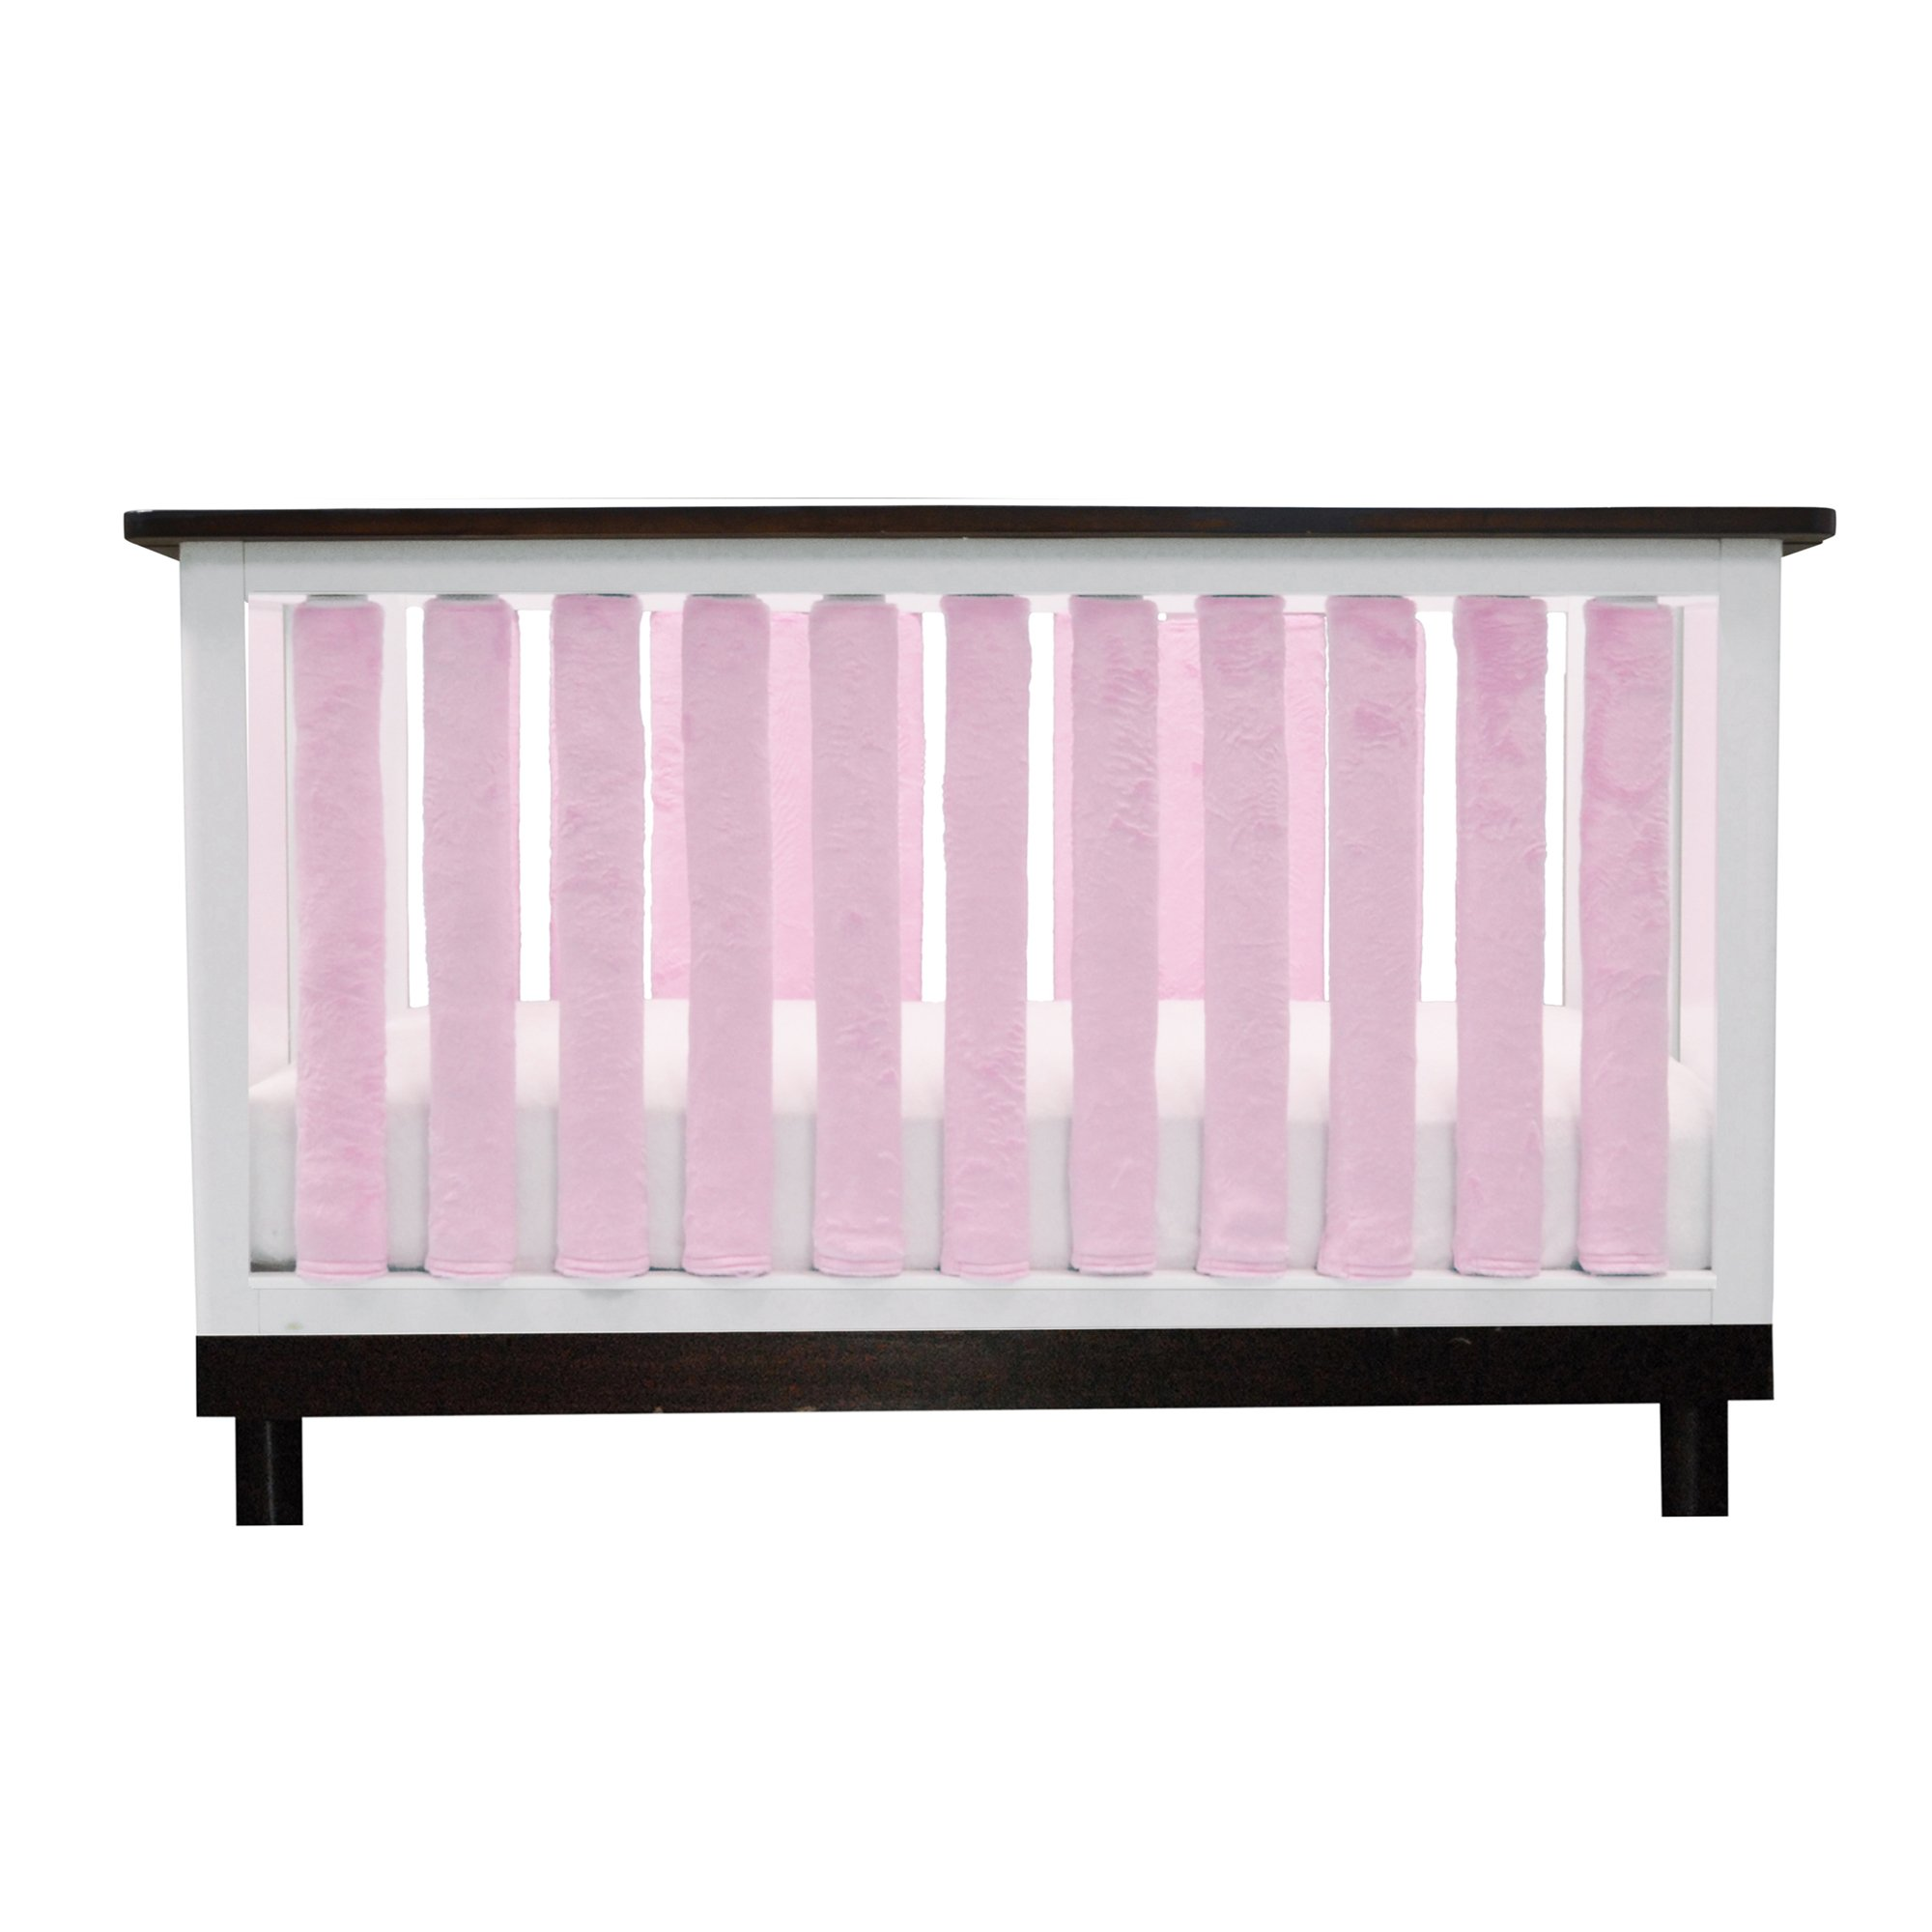 PURESAFETY Vertical Crib Liners 38 Pack in Luxurious Pink Minky